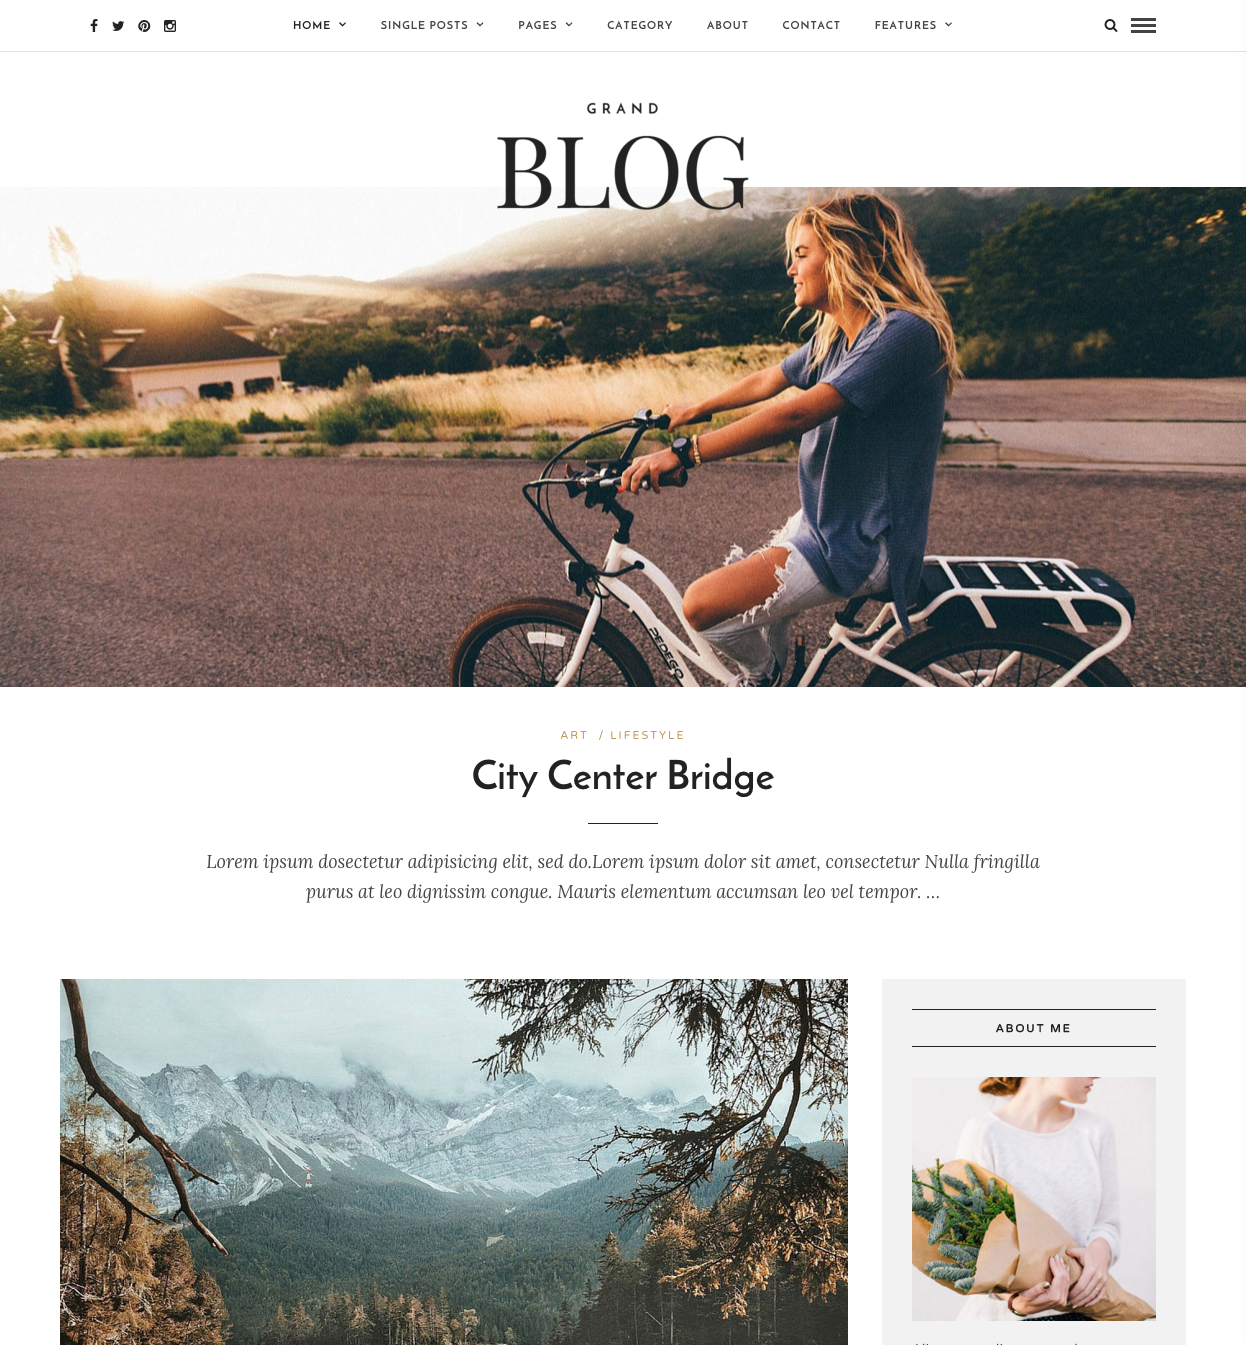 Grand Blog   Responsive Blog Theme   Just another WordPress site